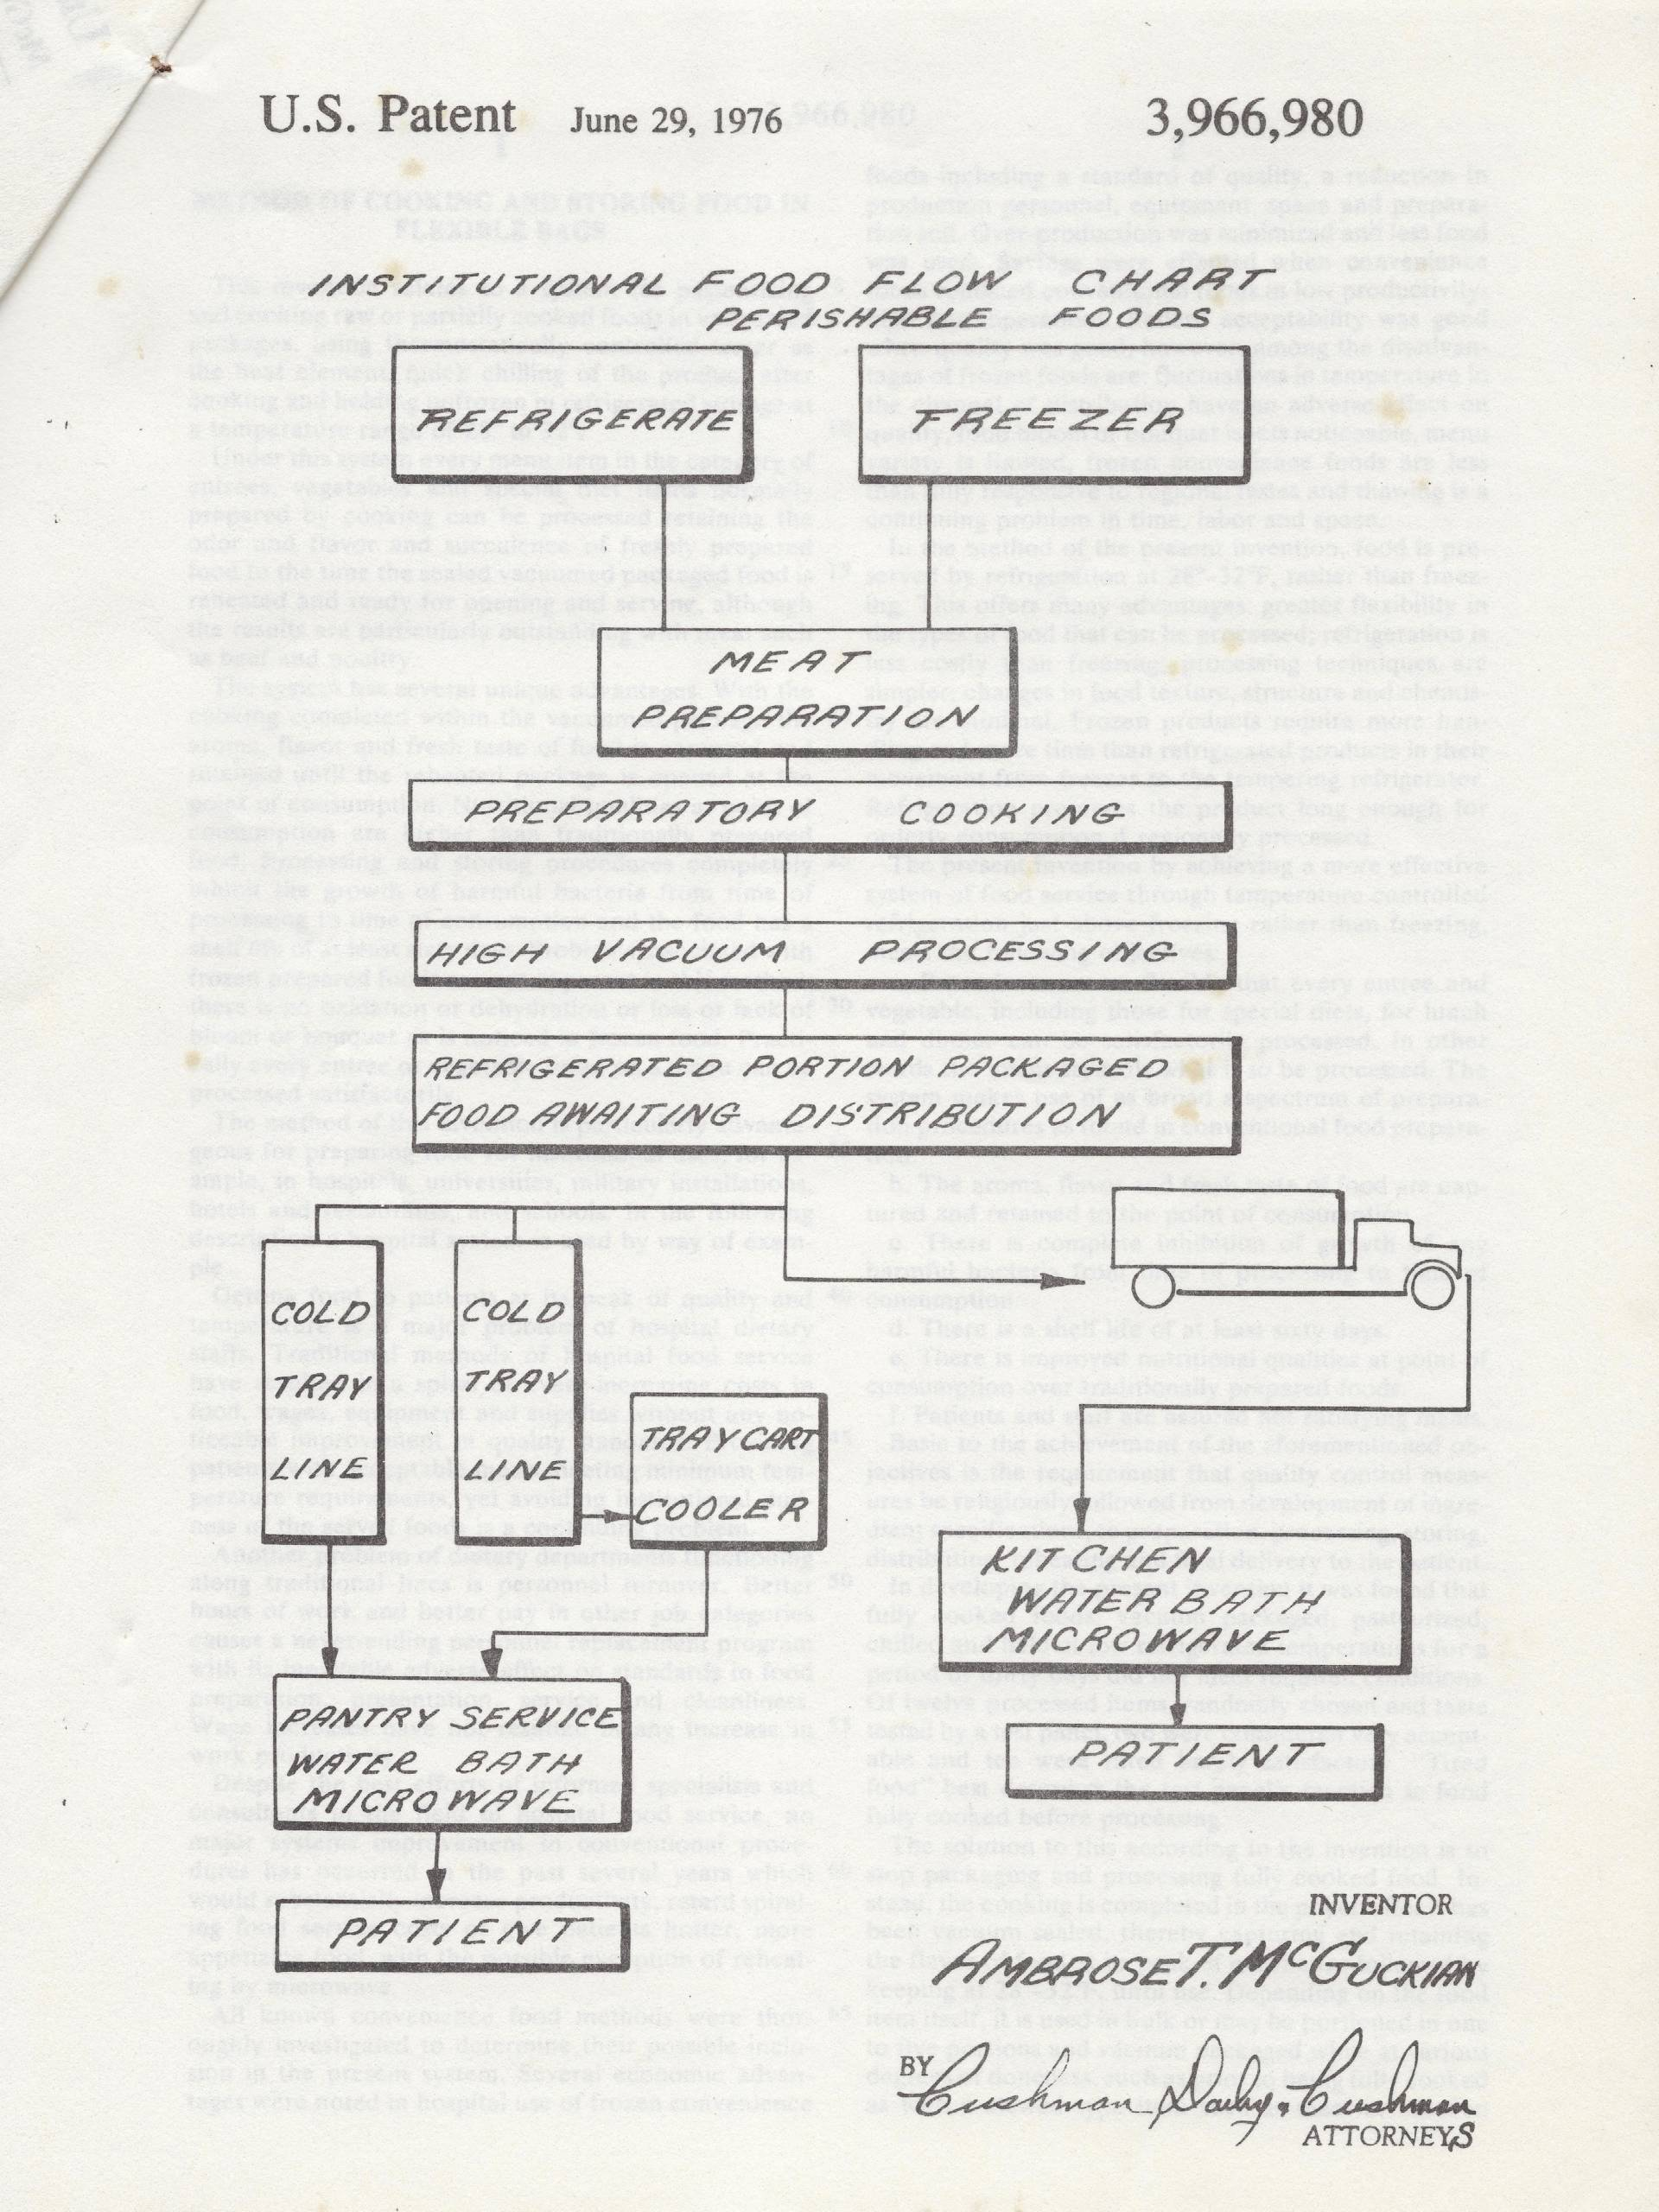 Ambrose McGuckian created a flowchart to illustrate the sequence of hospital food service from storage to preparation to patient for his patent.